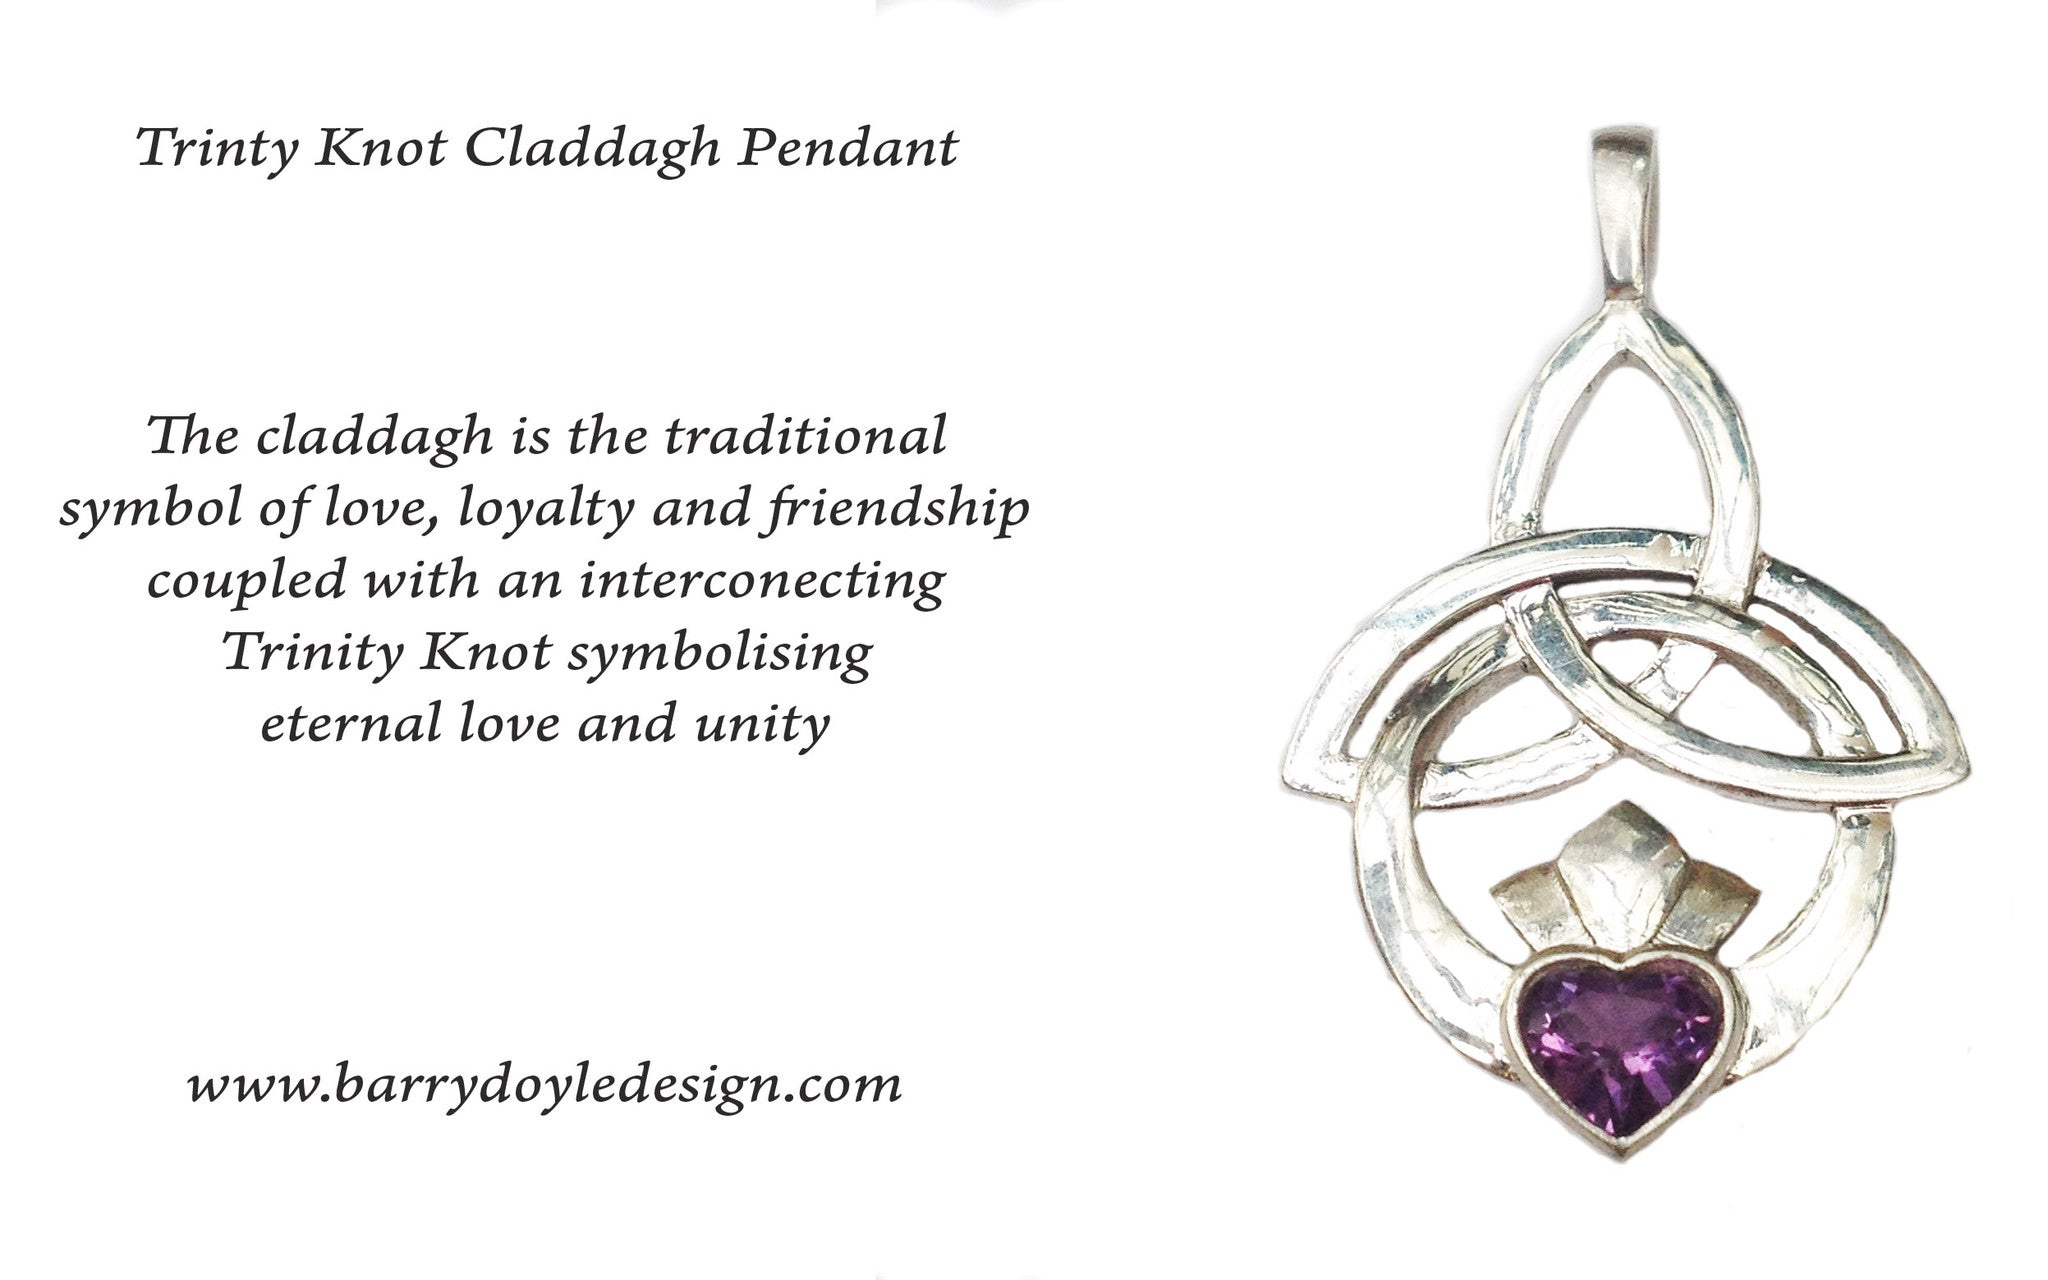 Story card for Trinity Knot Claddagh Pendant made in Ireland